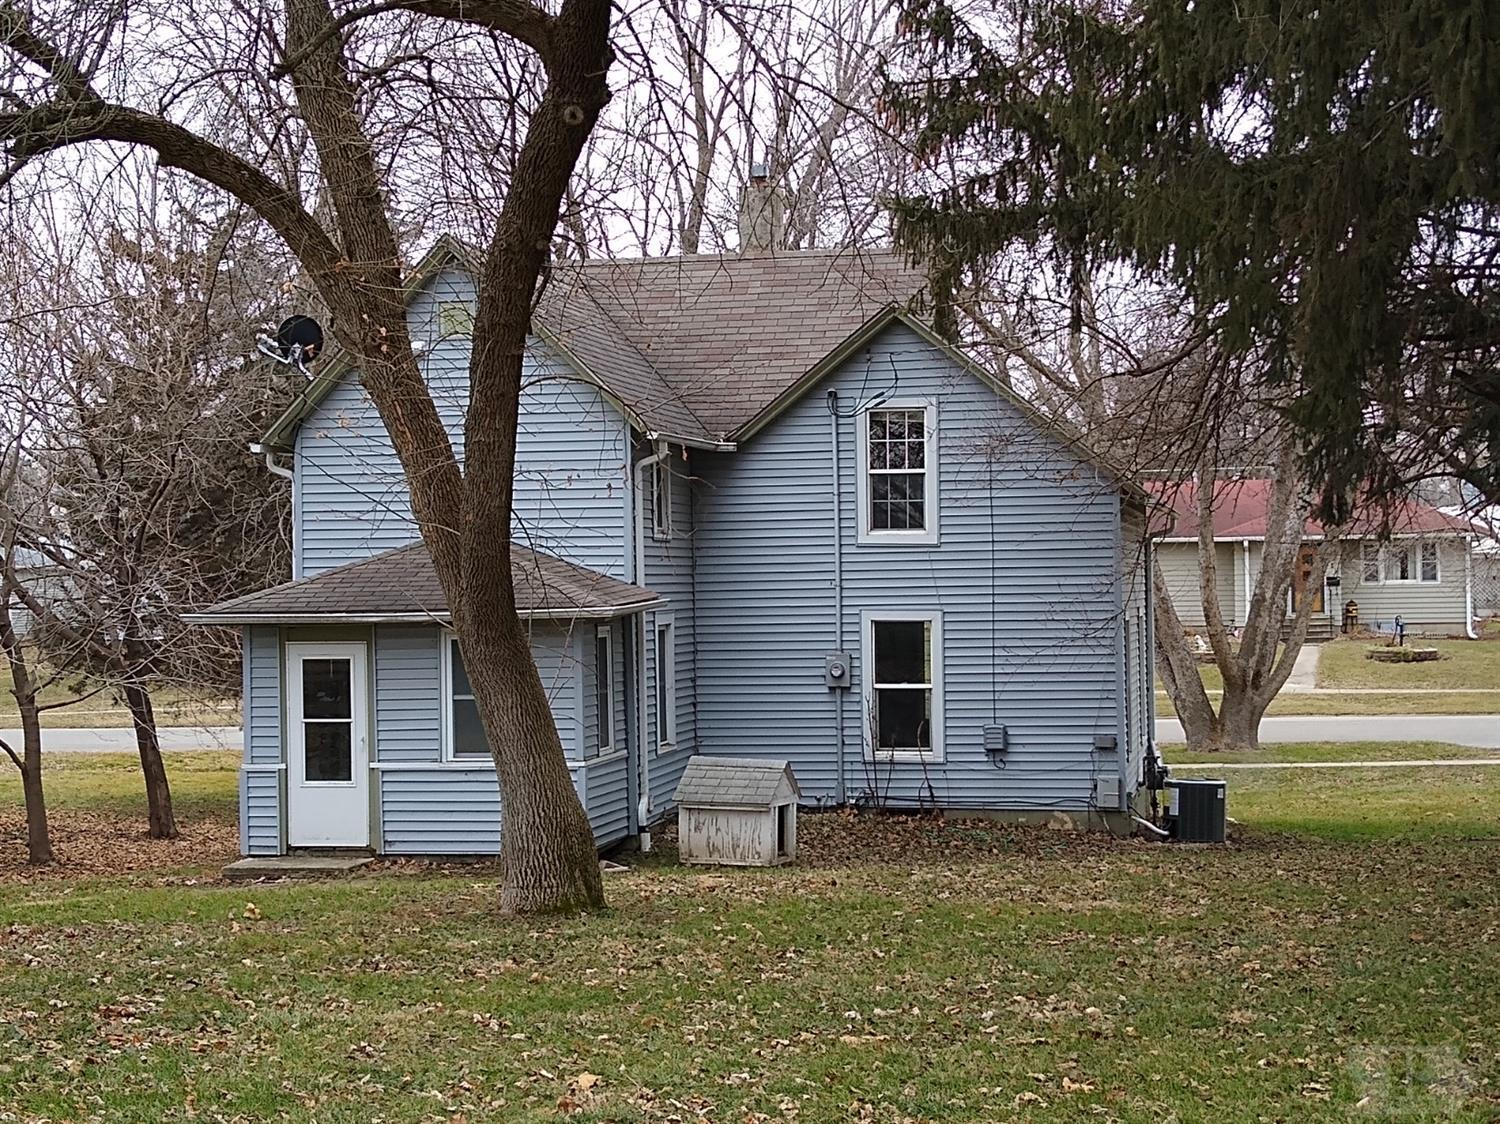 820 Elm, Grinnell, Iowa 50112, 3 Bedrooms Bedrooms, ,1 BathroomBathrooms,Residential,For Sale,Elm,35018083